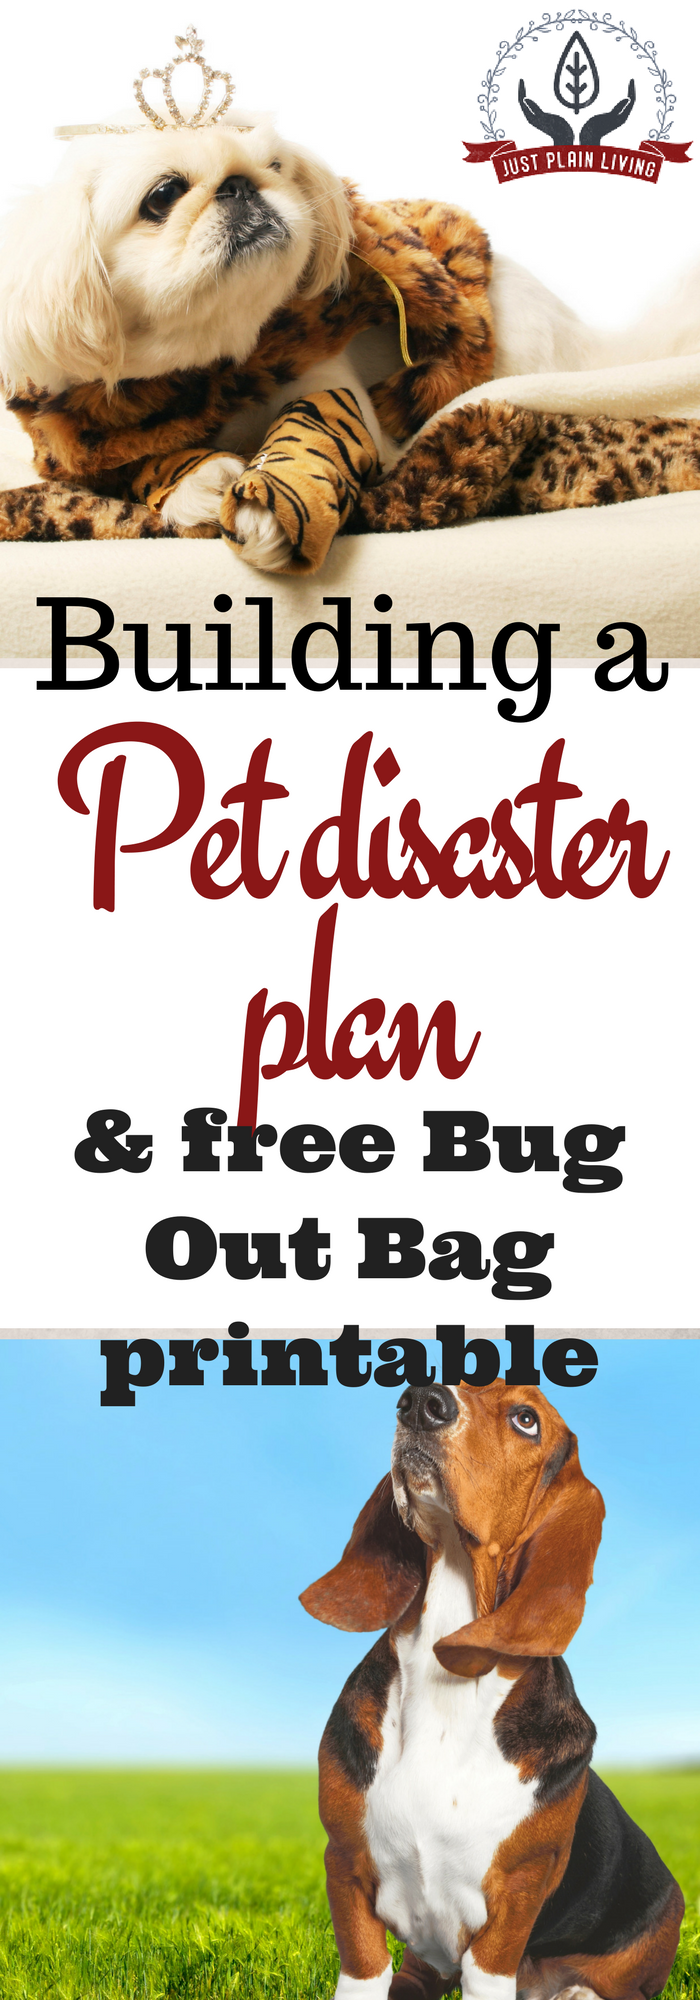 Pet Disaster Plan And Bug Out Bag Bug Out Bag Cheap Pet Insurance Pet Emergency